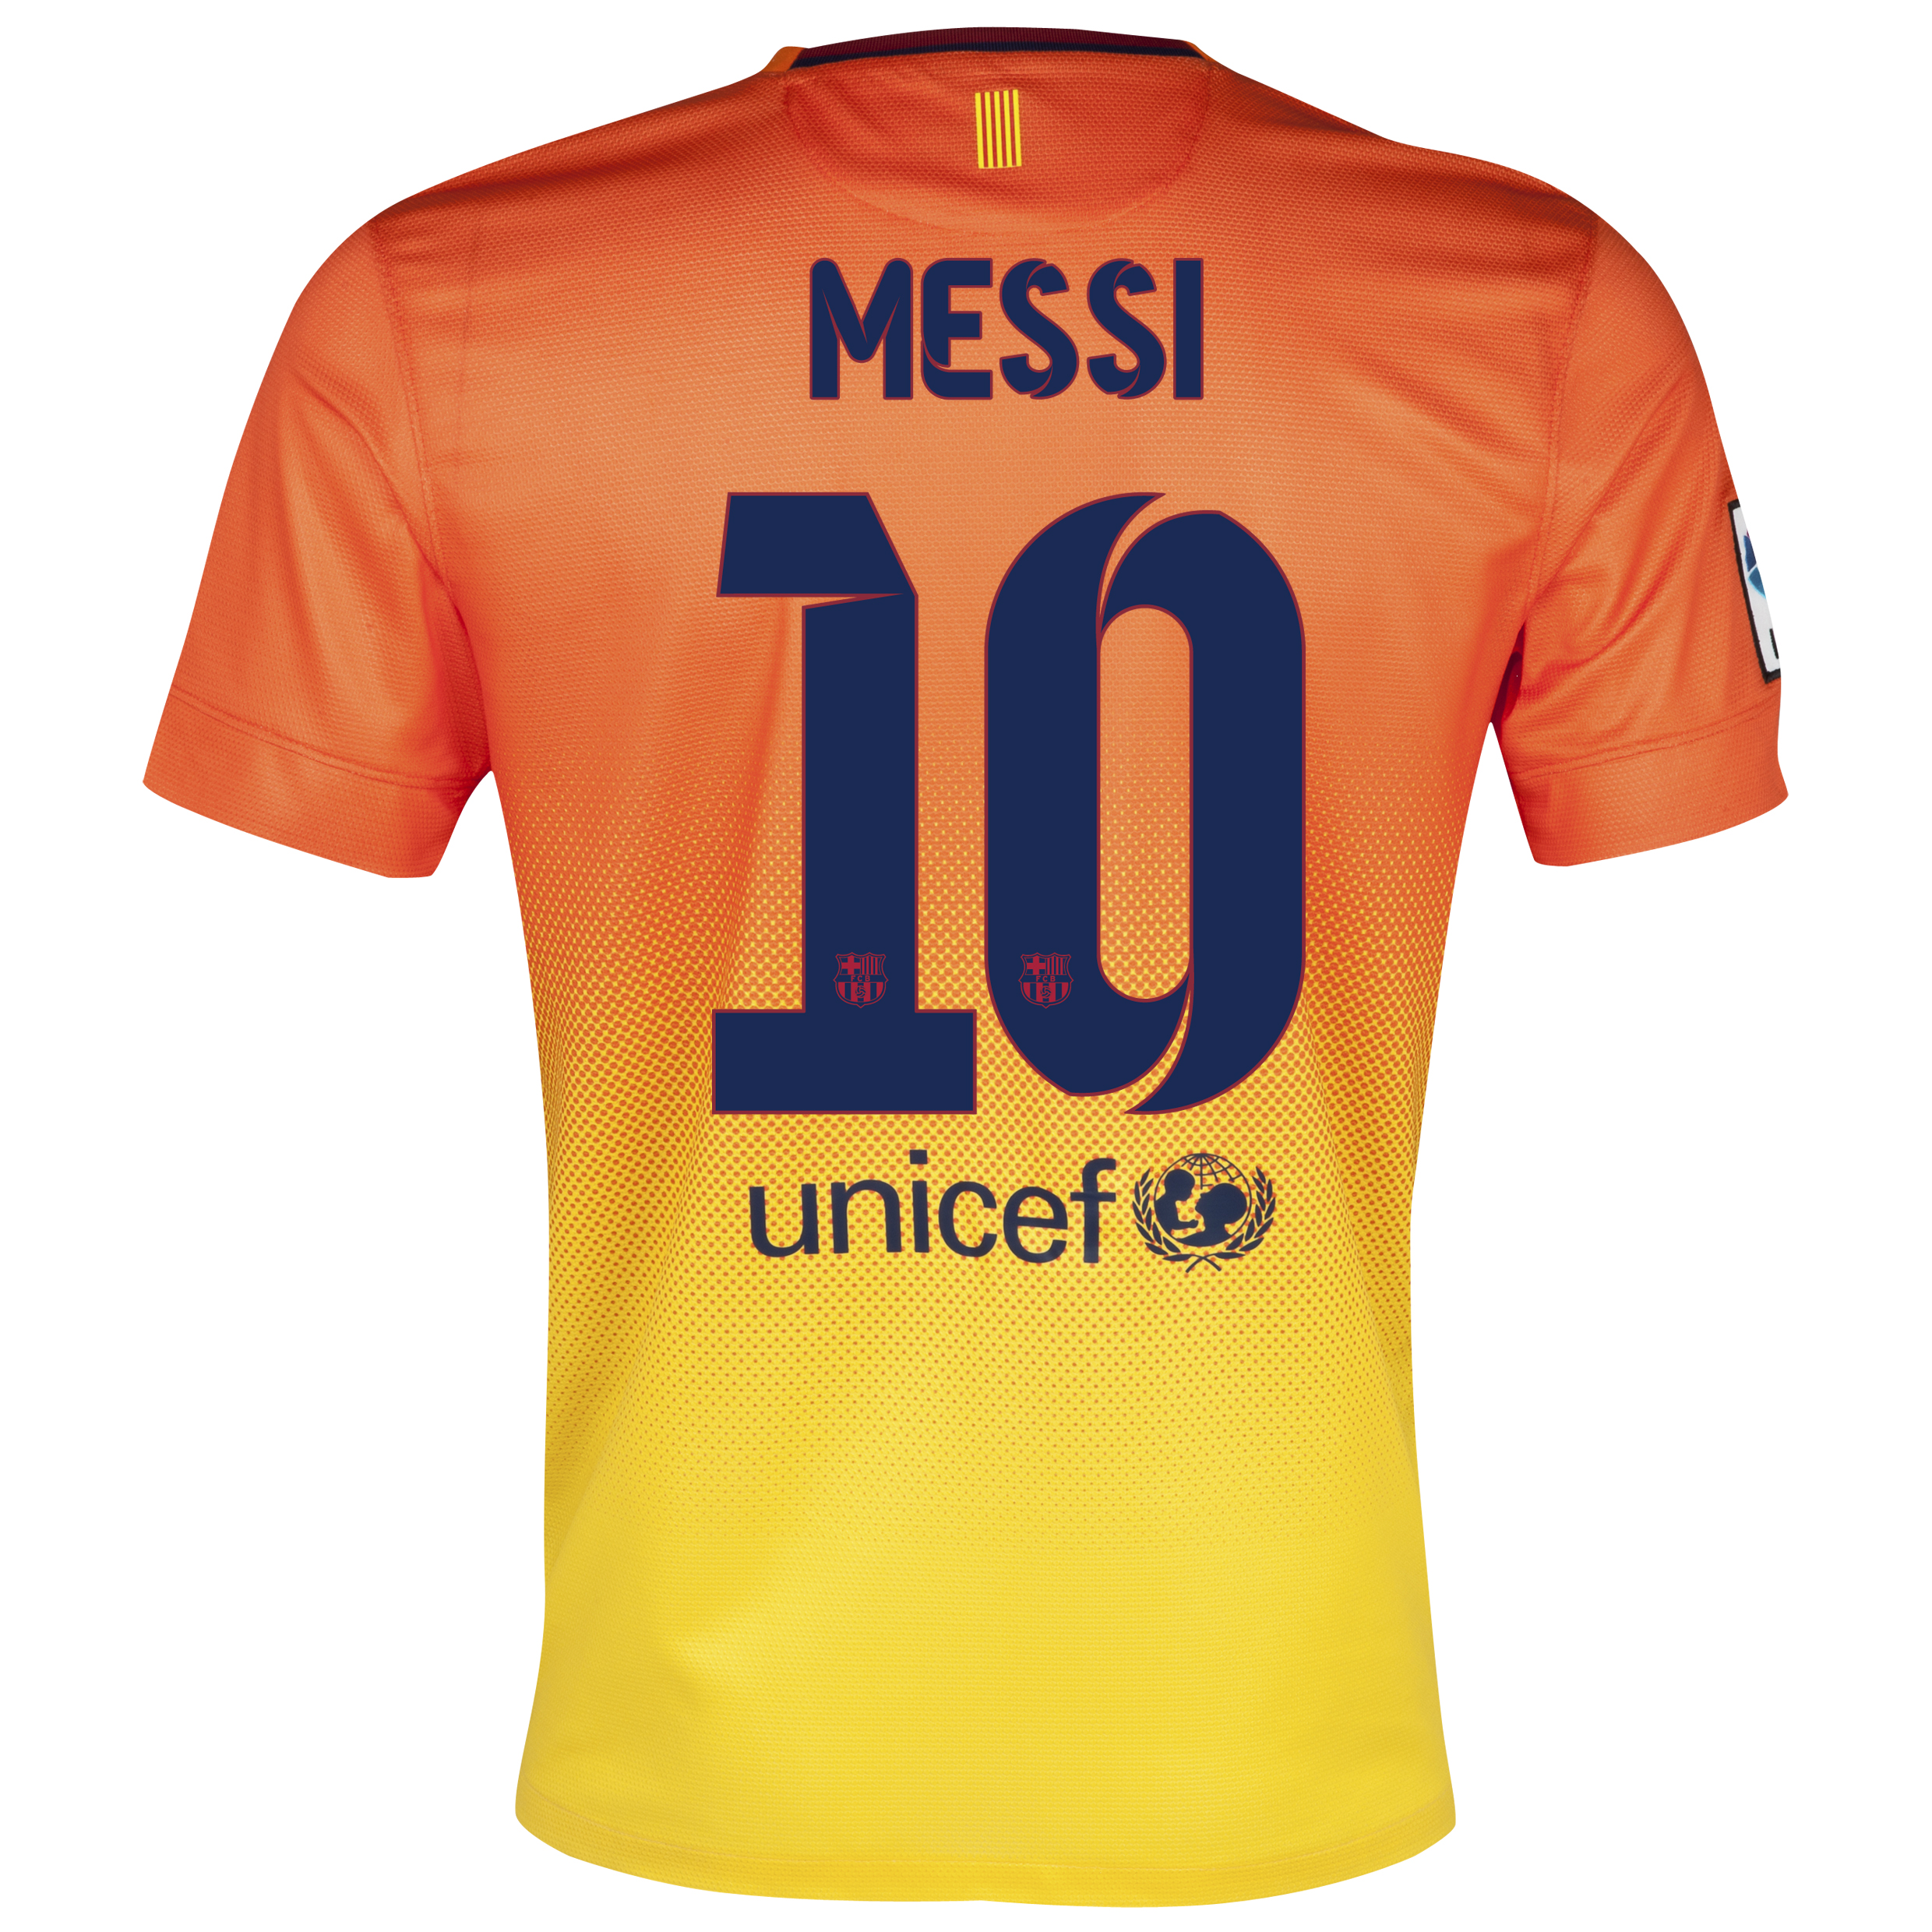 Barcelona Away Shirt 2012/13 with Messi 10 printing